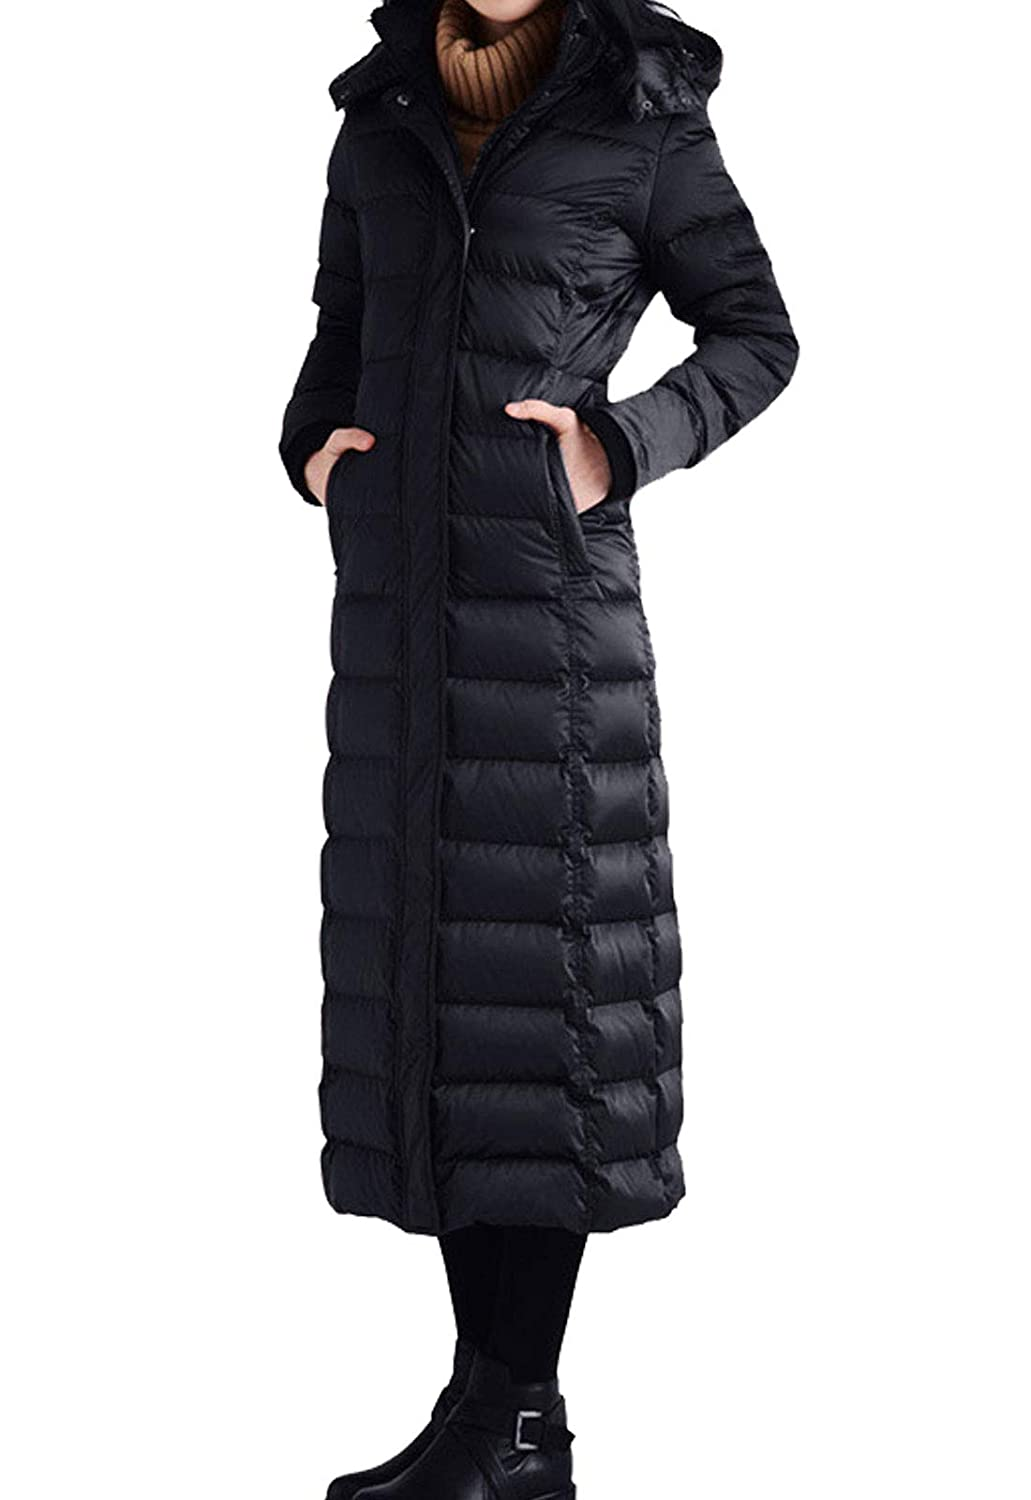 Black(no Faux Fur Collar) Flygo Women's Winter Thicken Hooded Maxi Down Coat Removable Faux Fur Collar